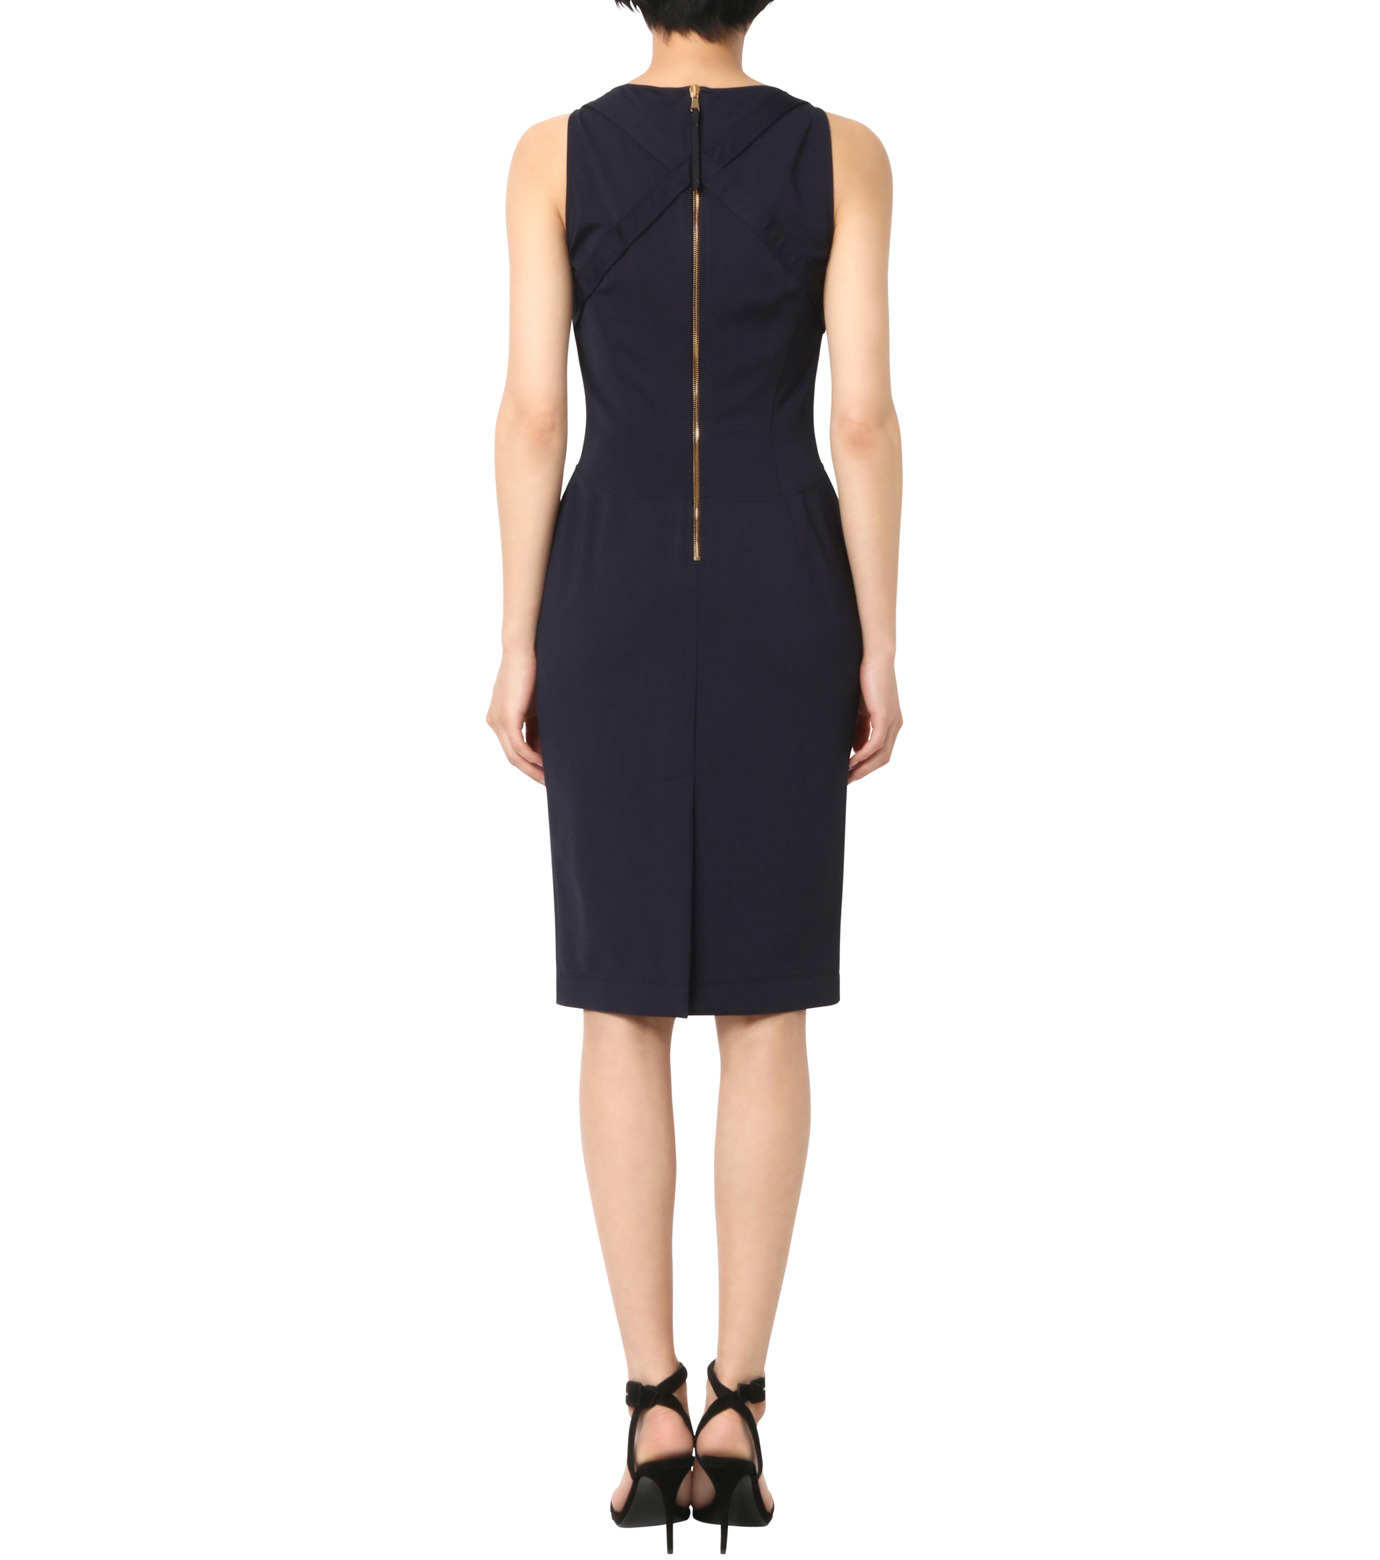 Altuzarra(アルトゥザラ)のFitted Stretch Dress-NAVY(ワンピース/one piece)-316-319-452-93 拡大詳細画像2